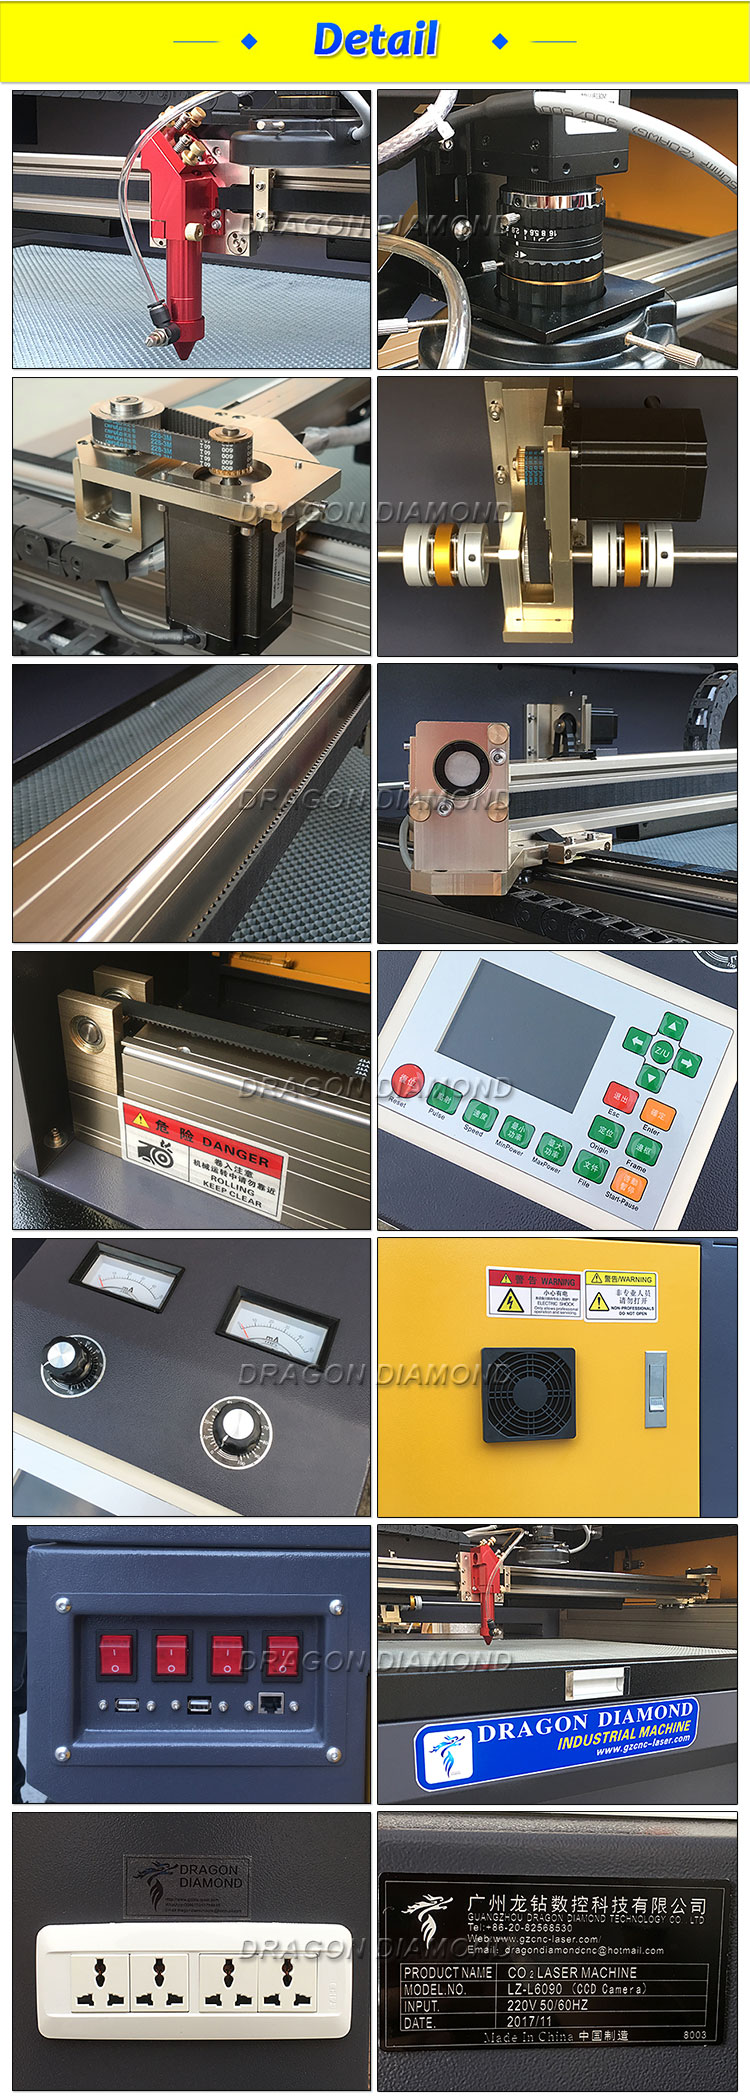 6090 Auto Position Cnc Co2 Laser Cutting Machine With Ccd Camera For Fabric Cloth Label Cutting